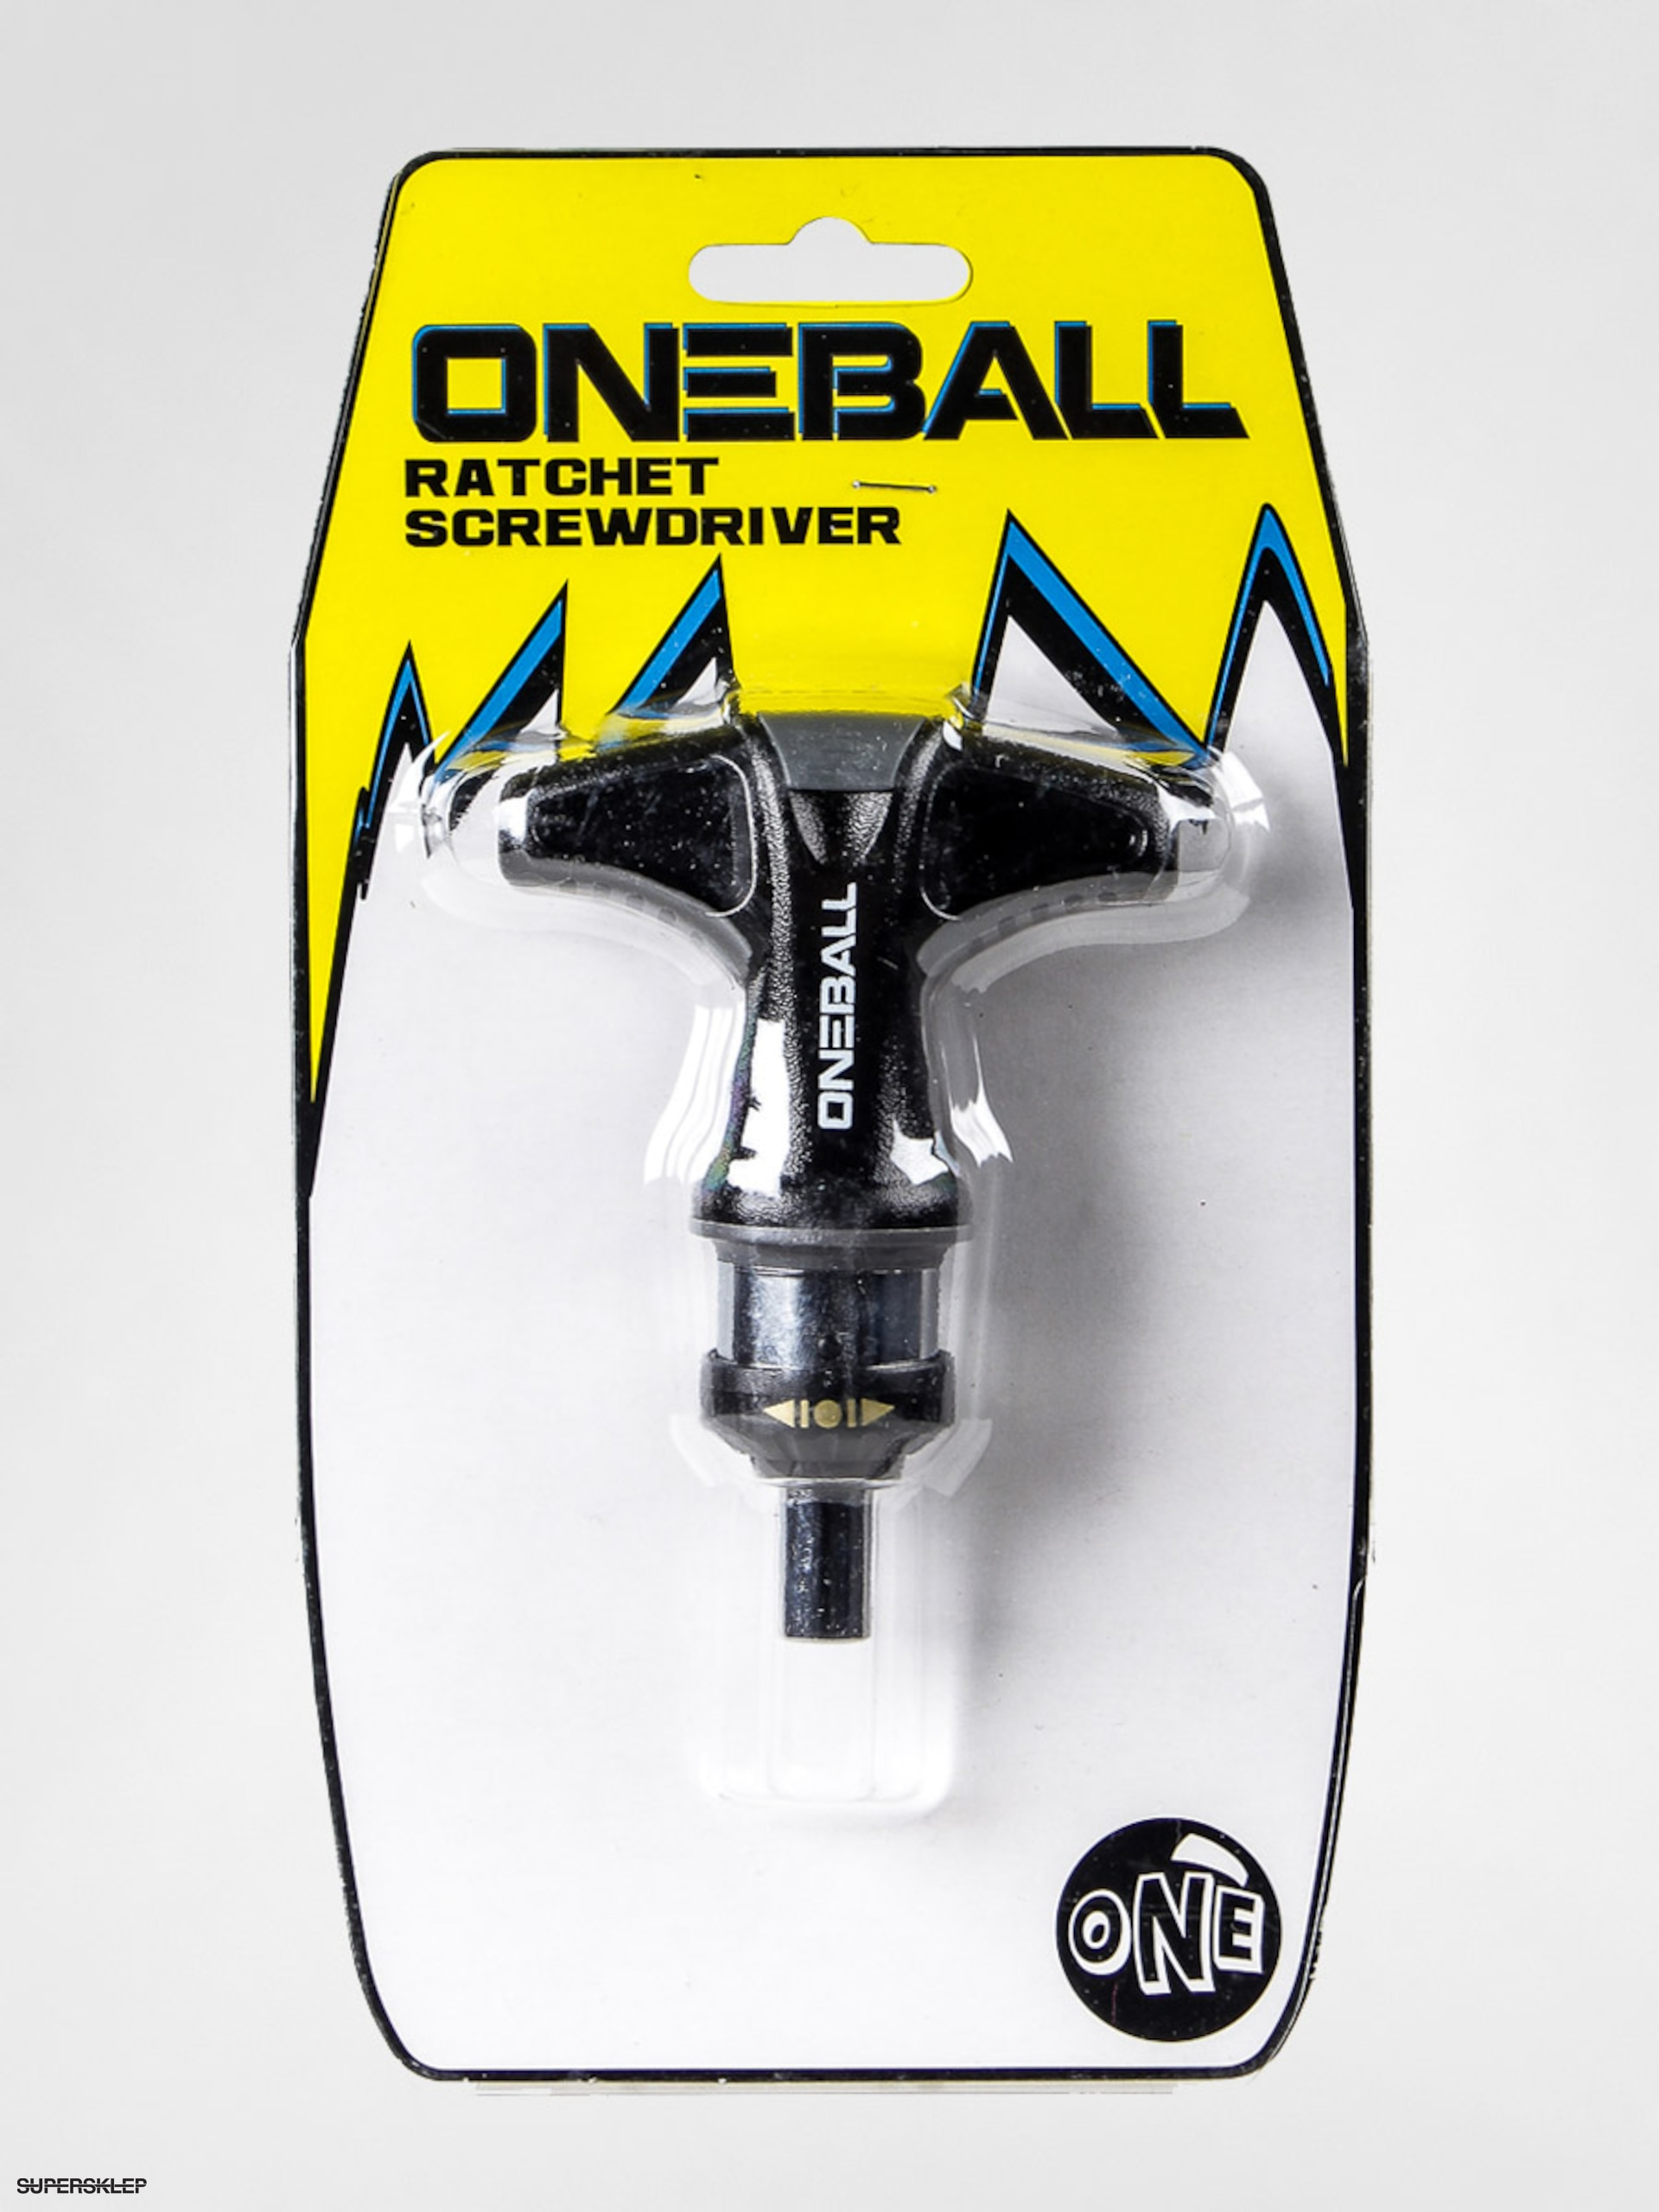 Podložka Oneball Ratchet Screwdriver